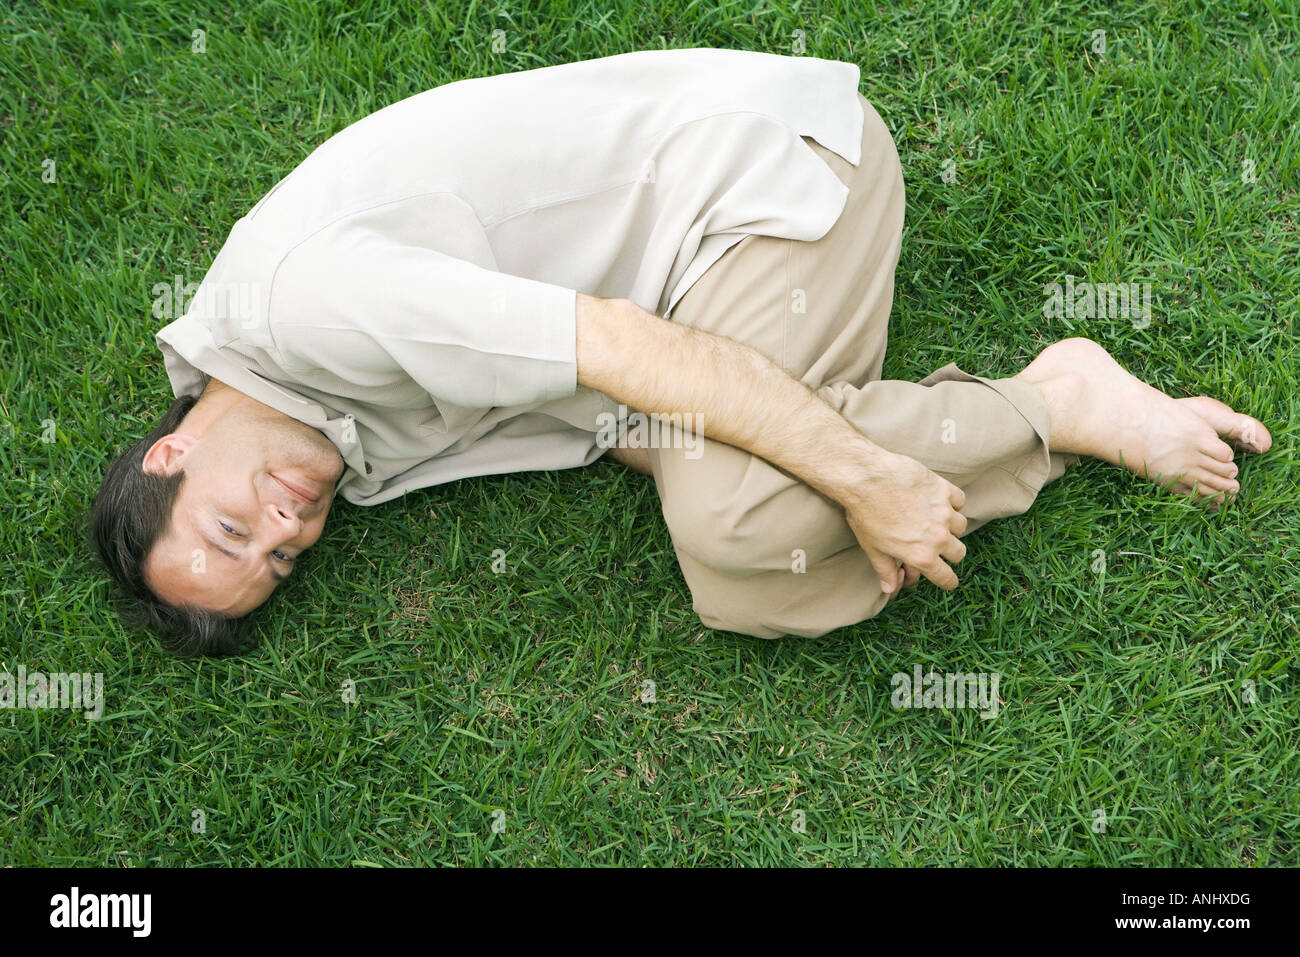 Man lying in fetal position on grass, smiling up at camera - Stock Image